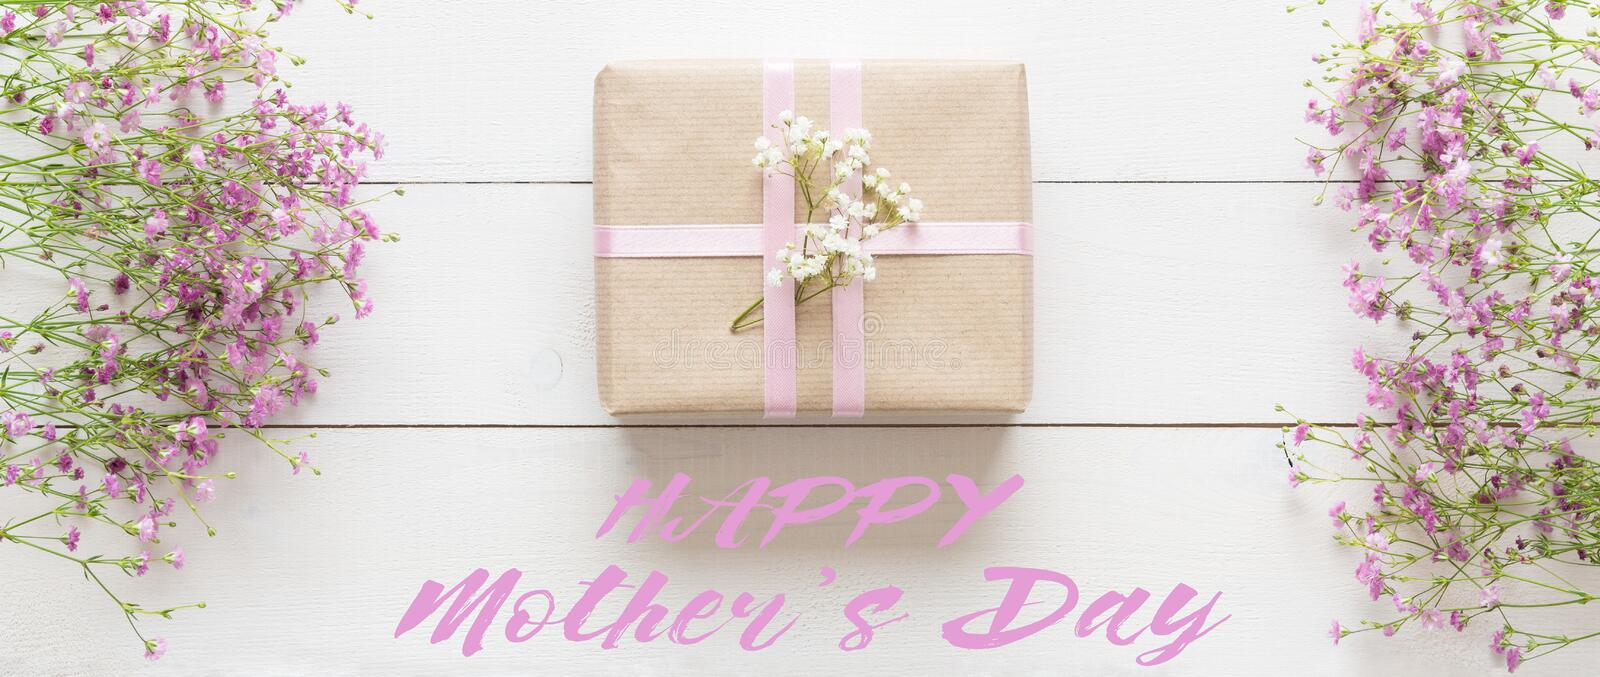 Mother`s day, white wooden table with pink flowers and a present royalty free stock images